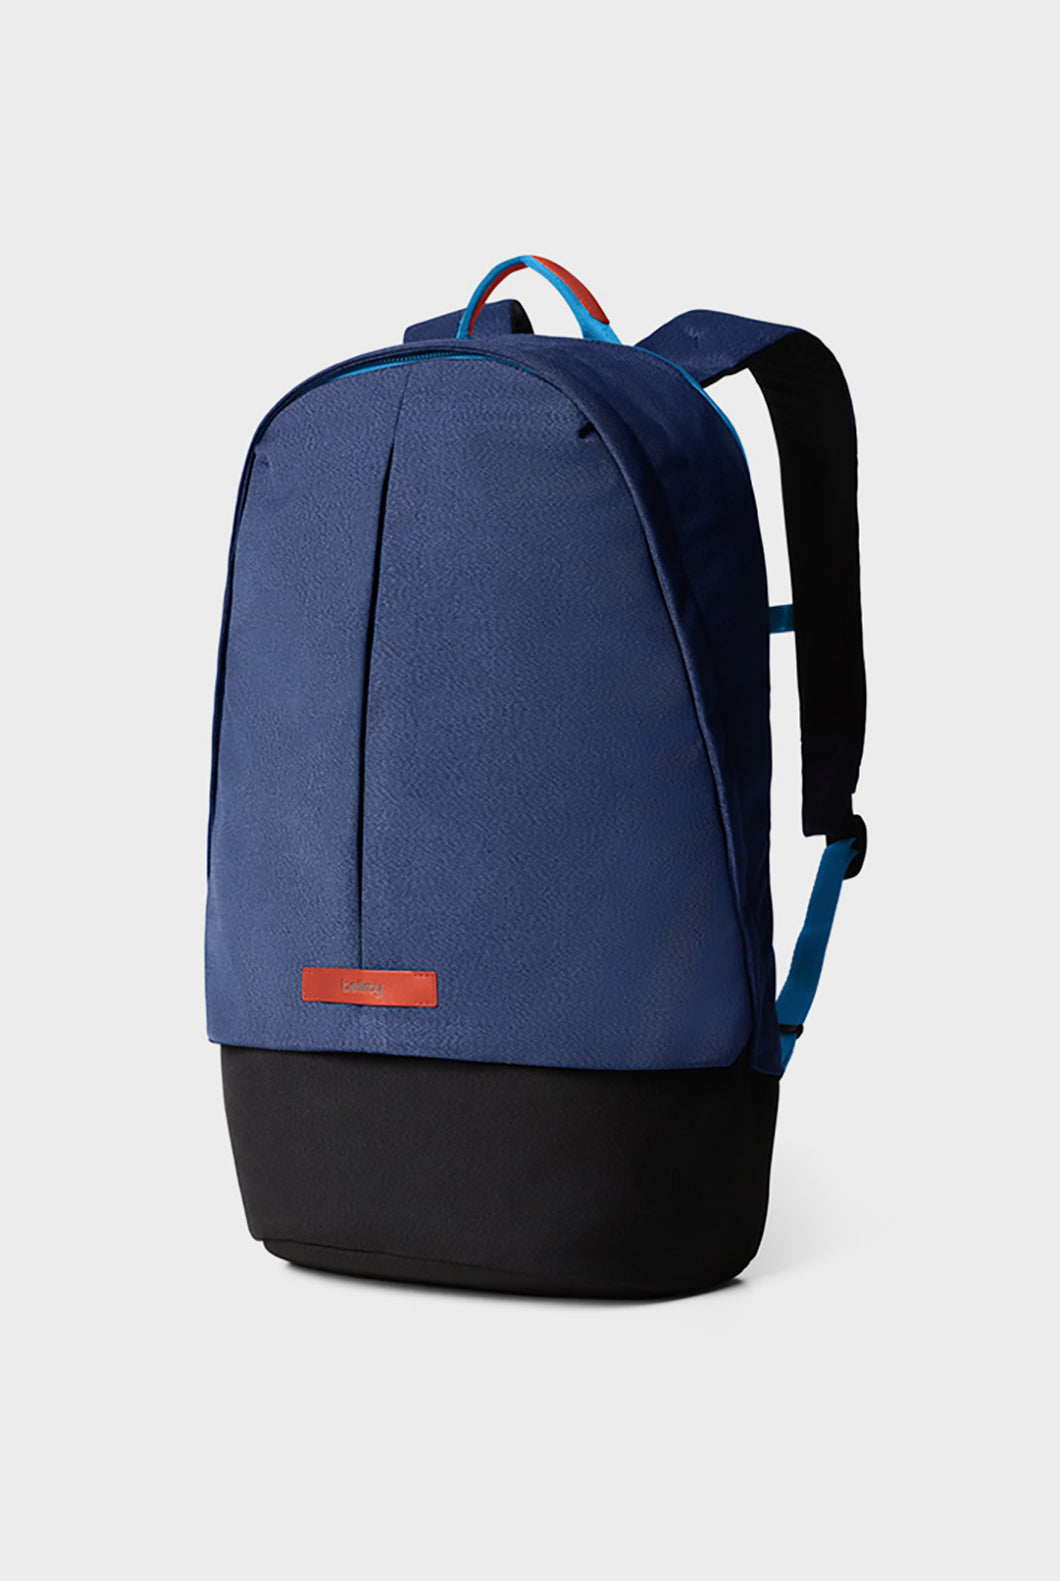 Bellroy - Classic Backpack Plus - 22L - Blue Neon